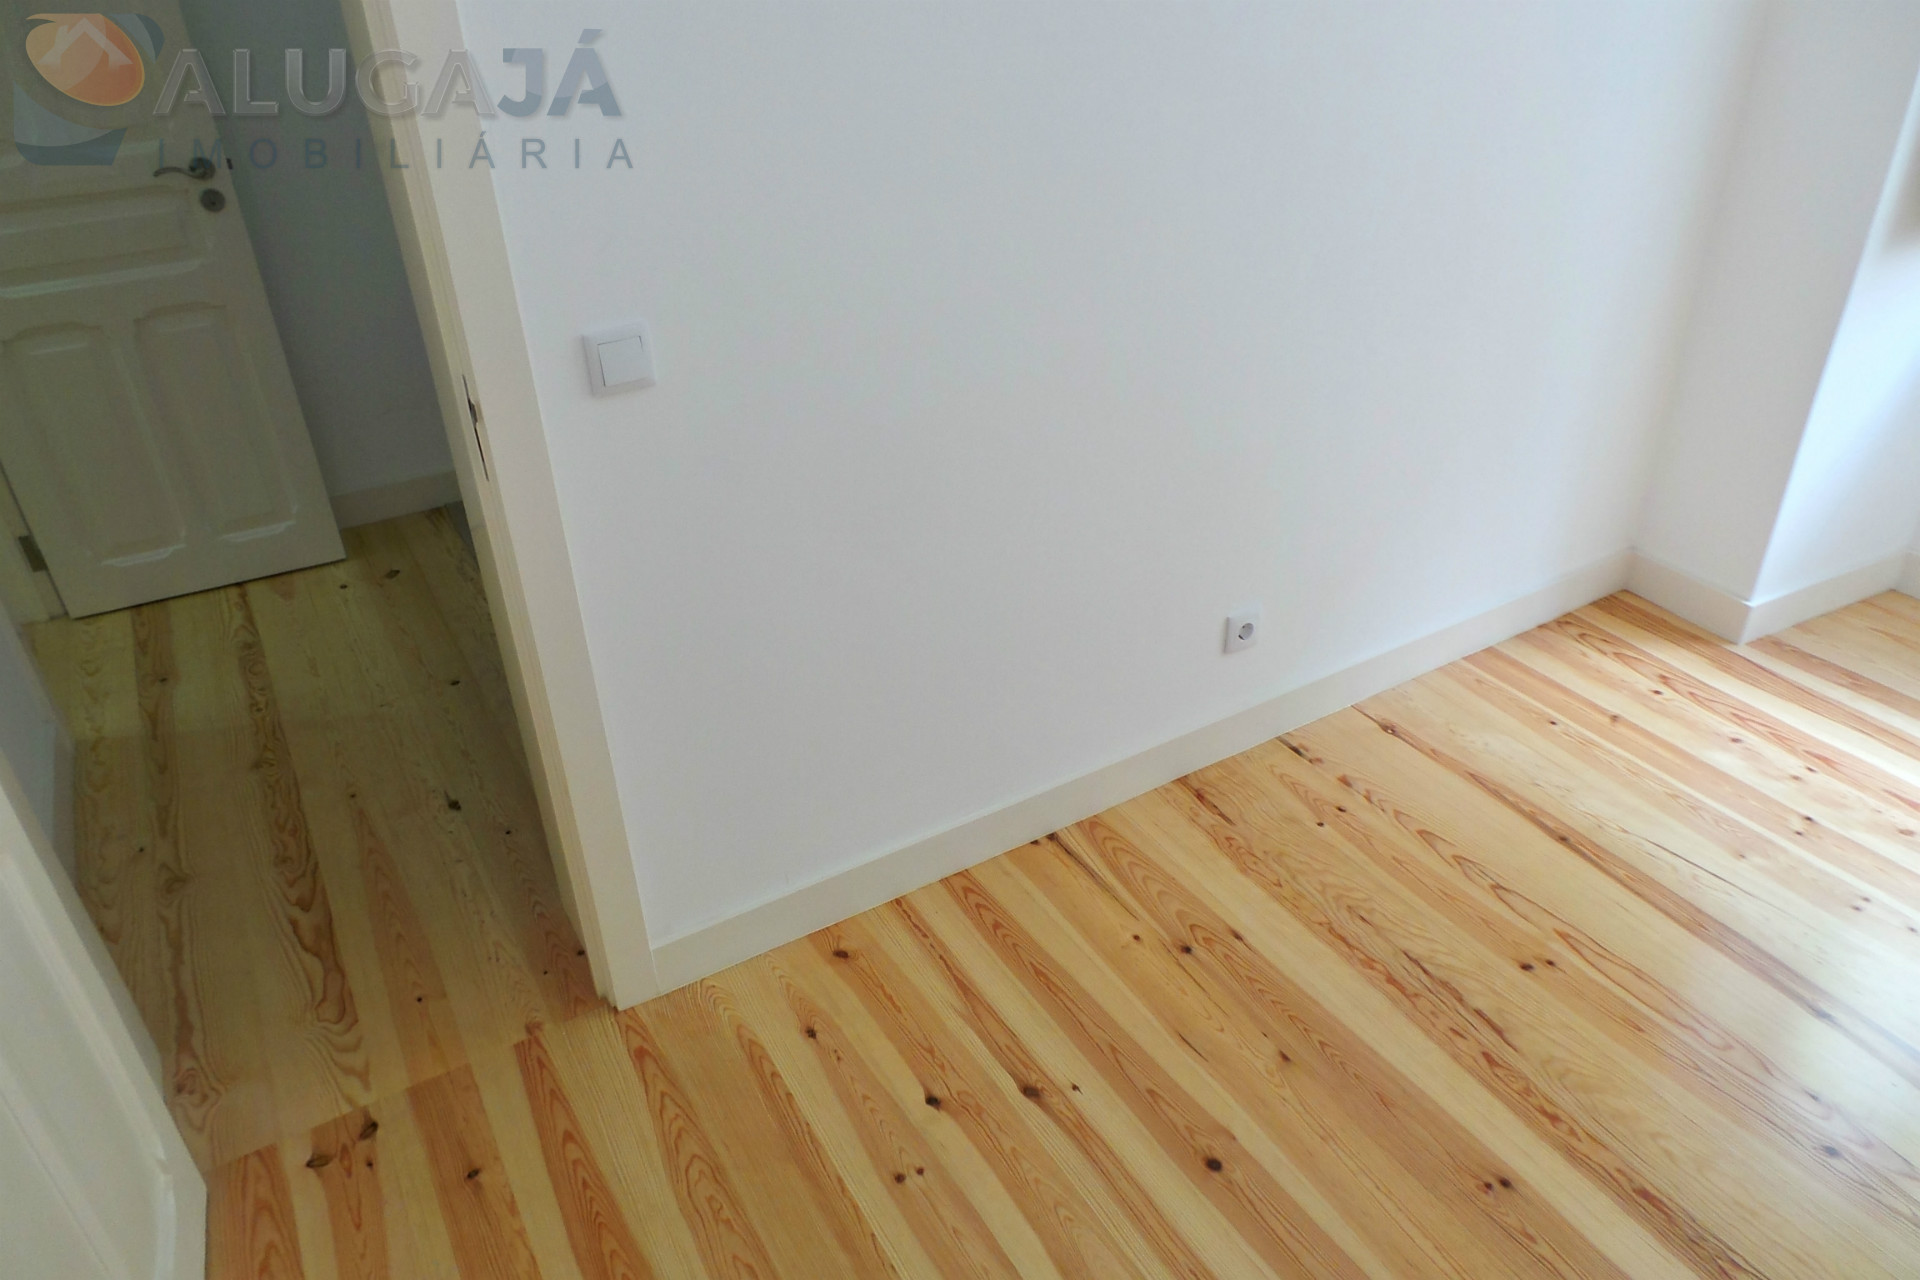 T2 + 1 apartment completely renovated in Graça, located in the traditional area of Lisbon